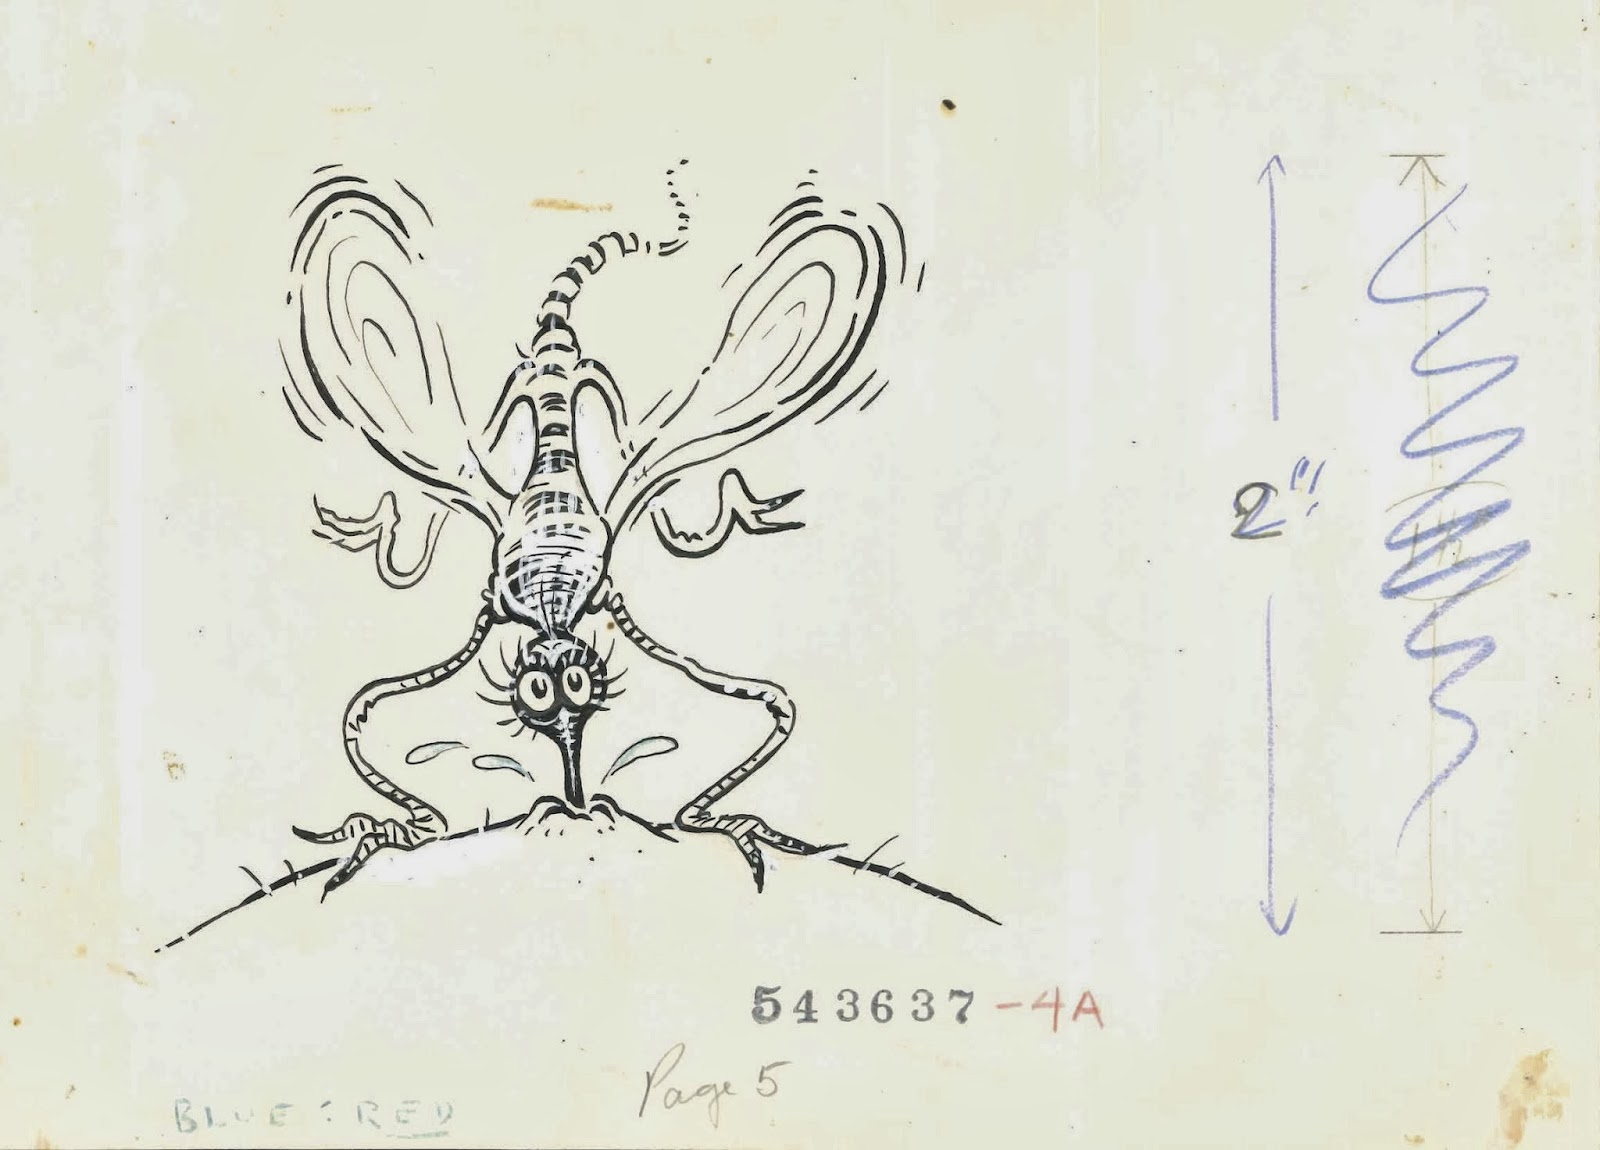 A Geisel illustration of a mosquito drinking from someone's skin.